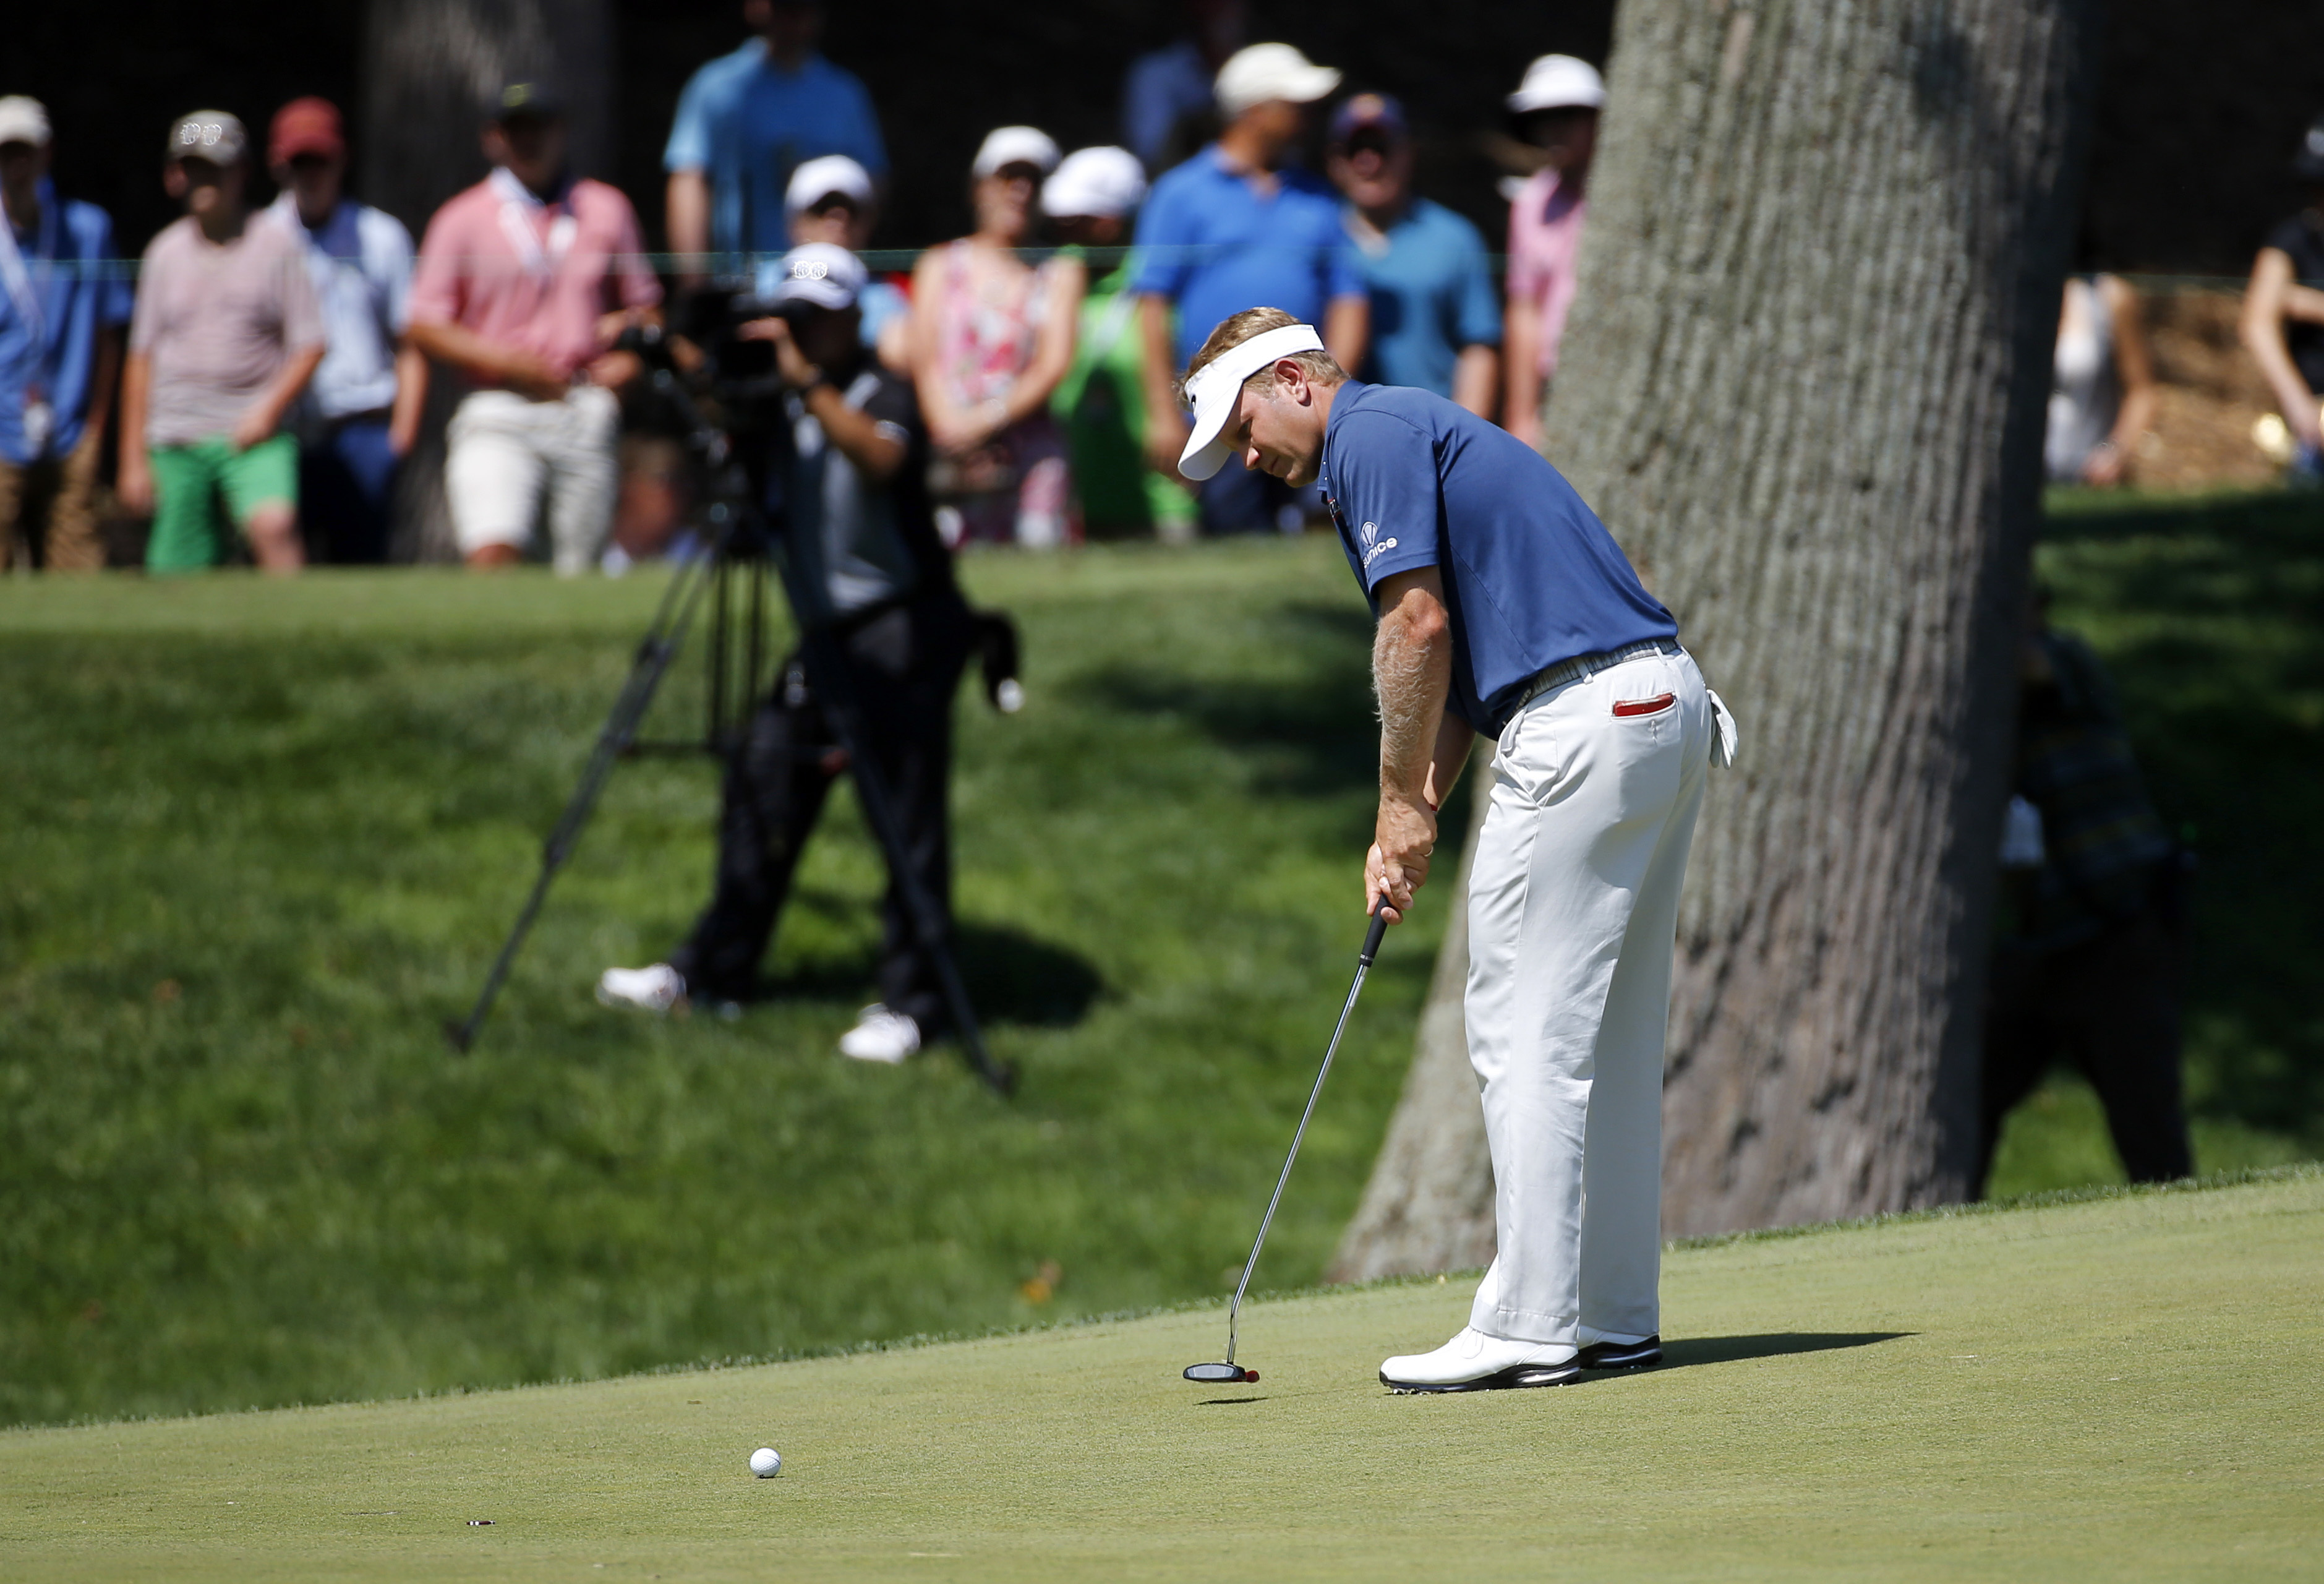 Billy Hurley III putts on the sixth green during the third round of the Quicken Loans National PGA golf tournament, Saturday, June 25, 2016, in Bethesda, Md. (AP Photo/Patrick